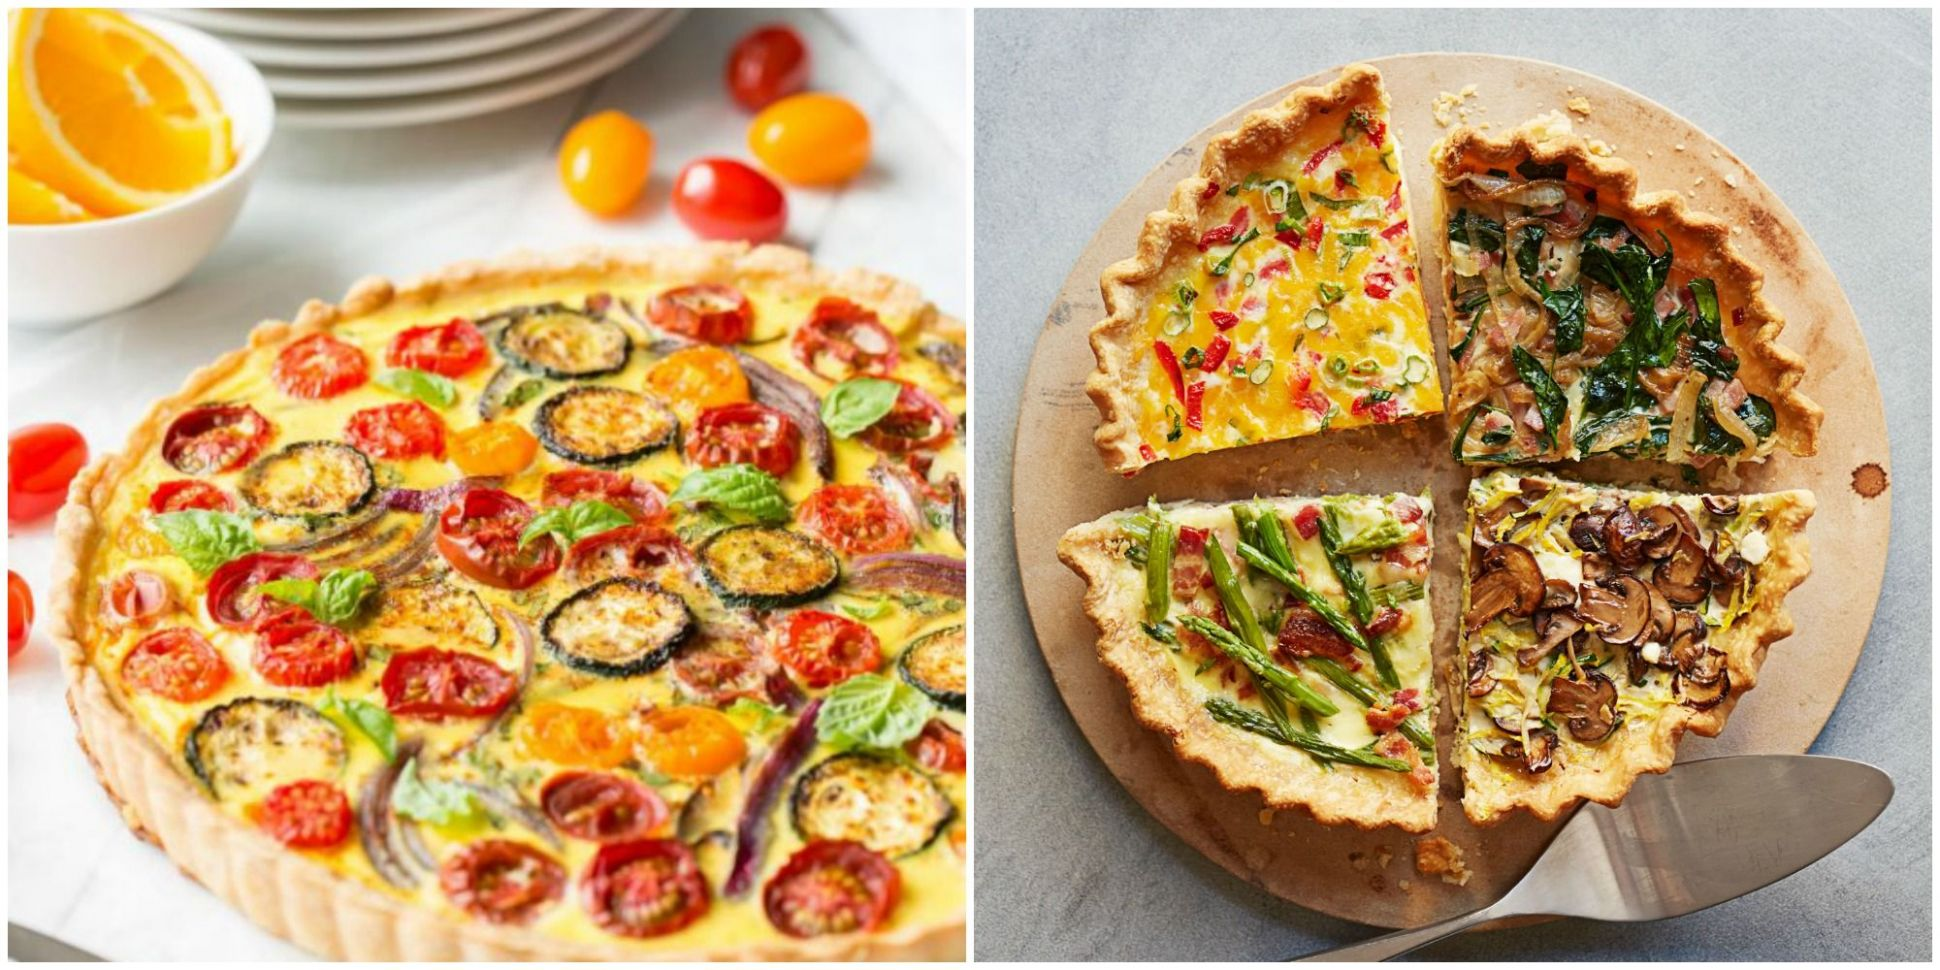 11 Quiches That Will Elevate Your Brunch Game - Quiche Recipes - halloween quiche ideas